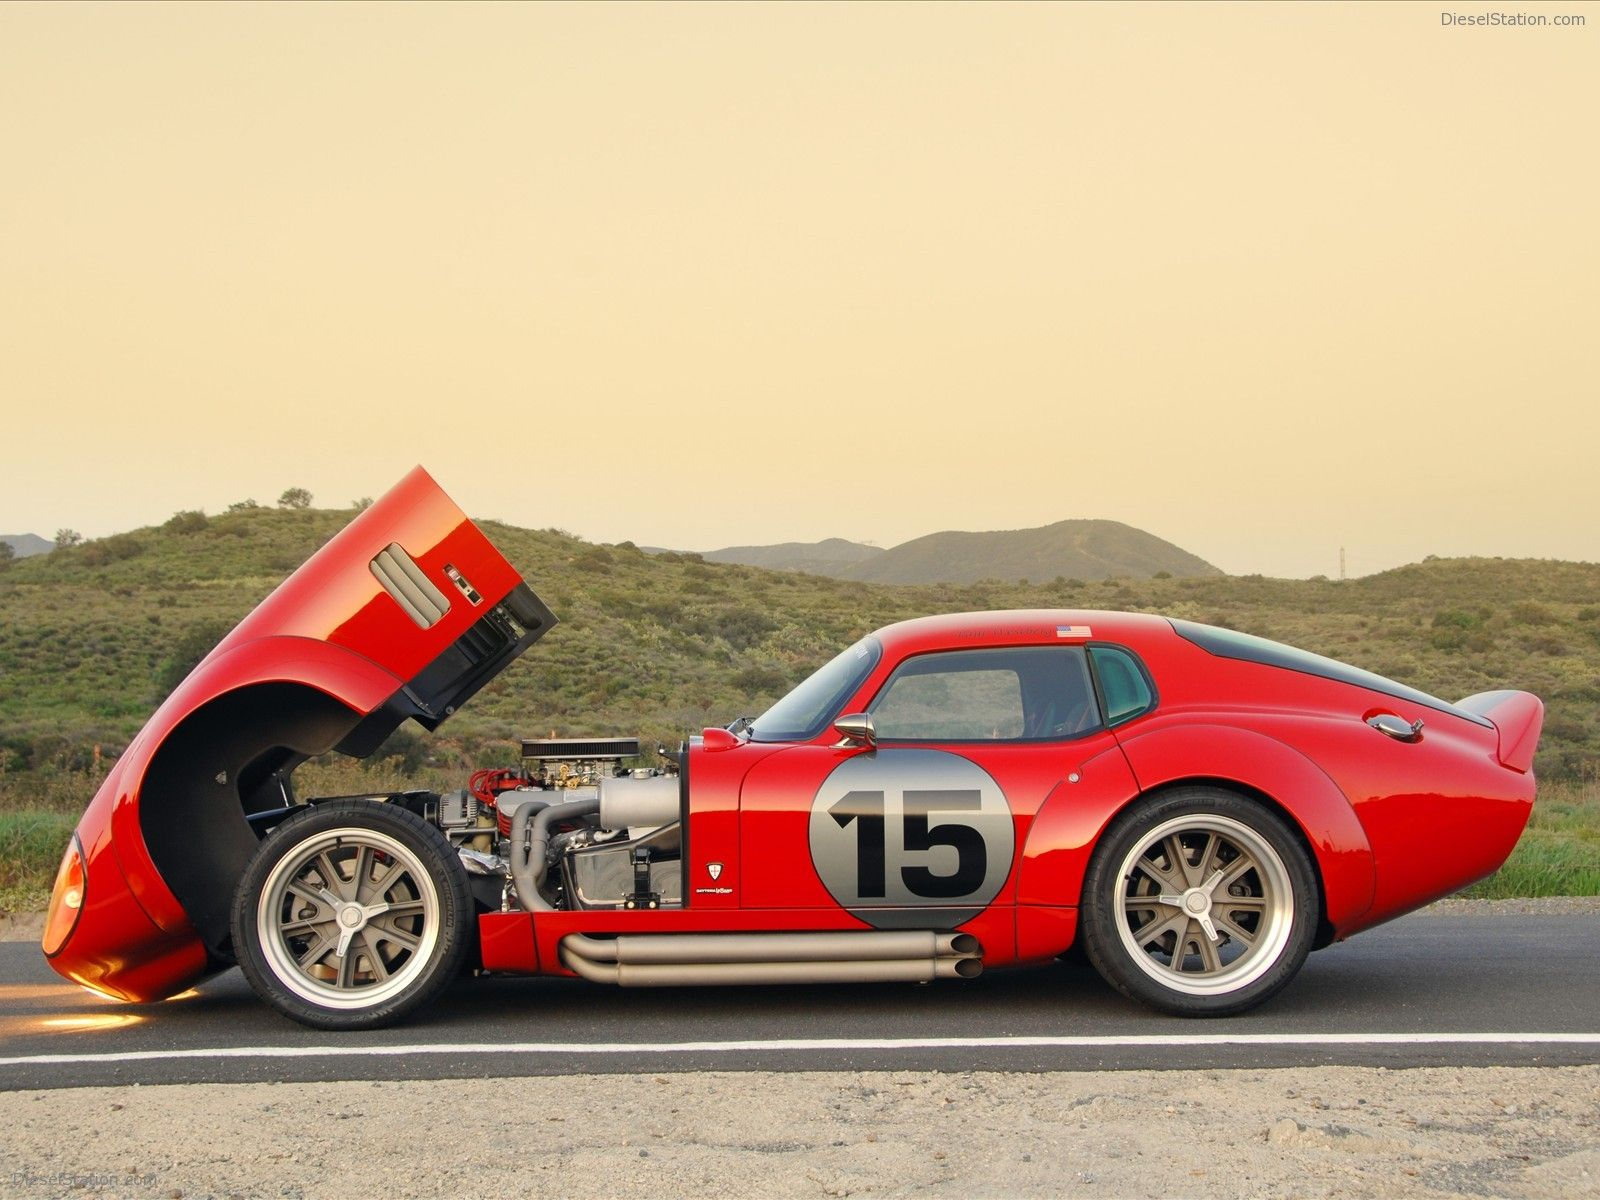 Shelby Daytona Coupe This Is A Cool Car Look At A Lot More - Look at cool cars